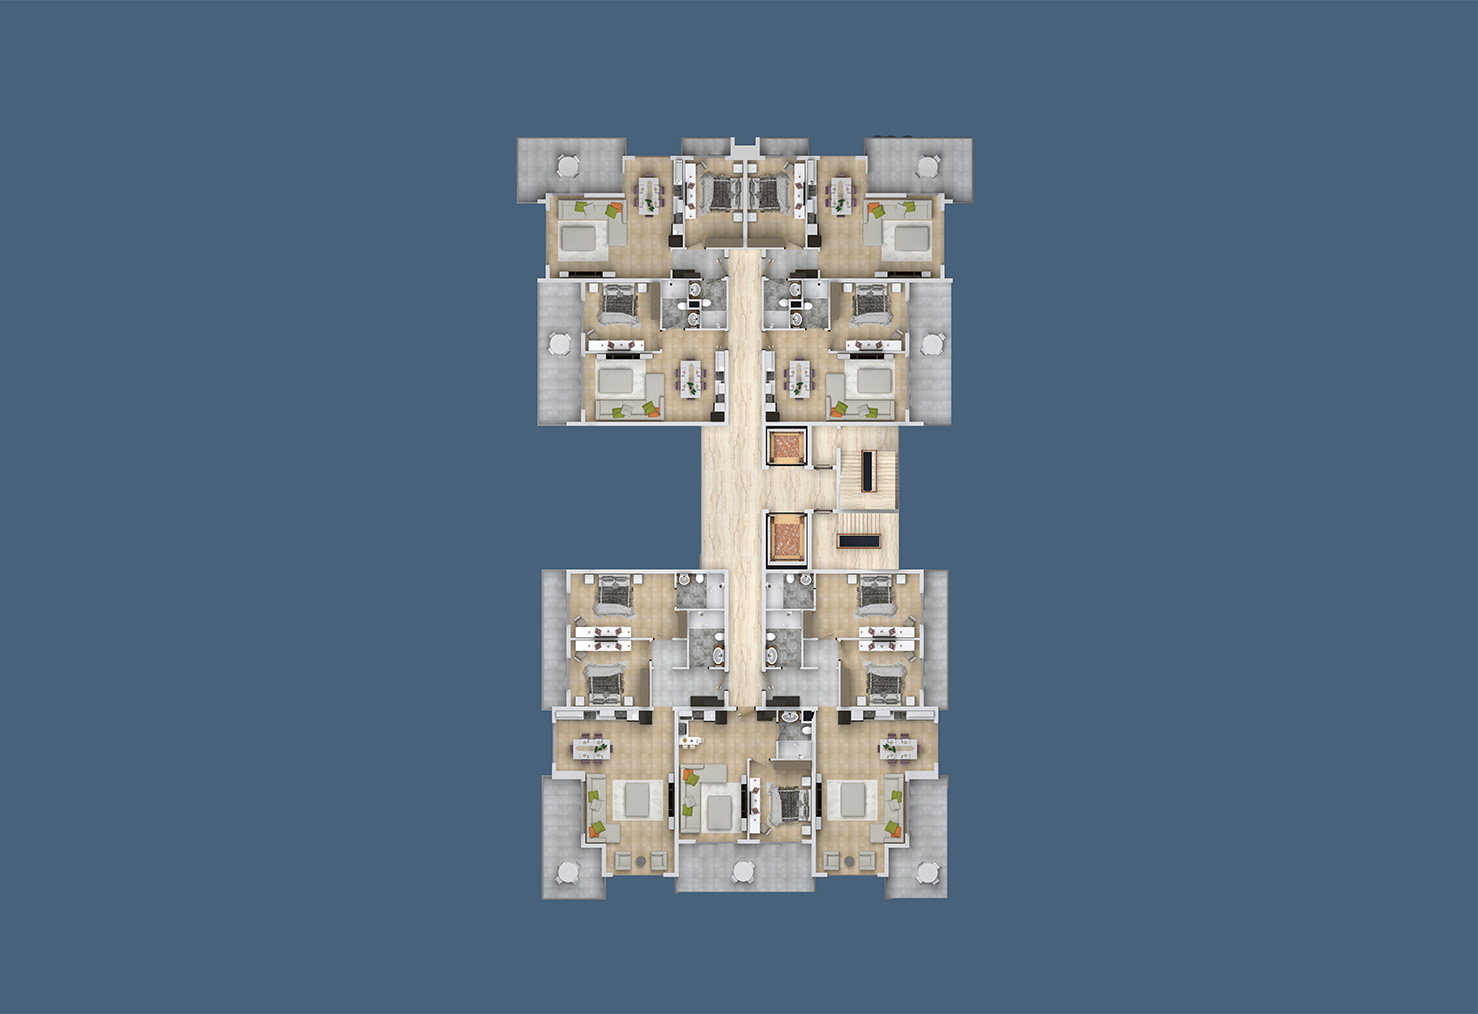 Floor plans of apartments 6 floor «C» Yekta Kingdom Trade Center